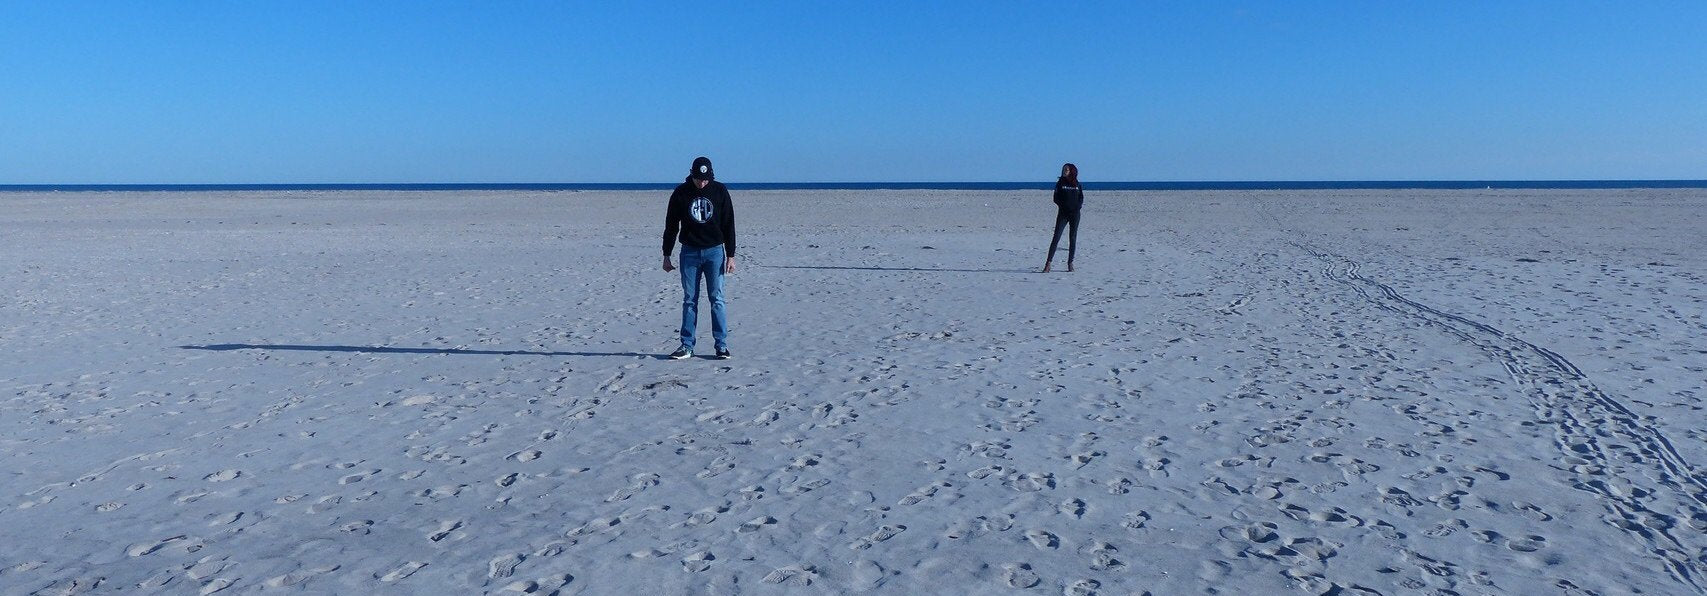 Man in the front of the image, woman in the background, wearing GFL sweaters on the beach